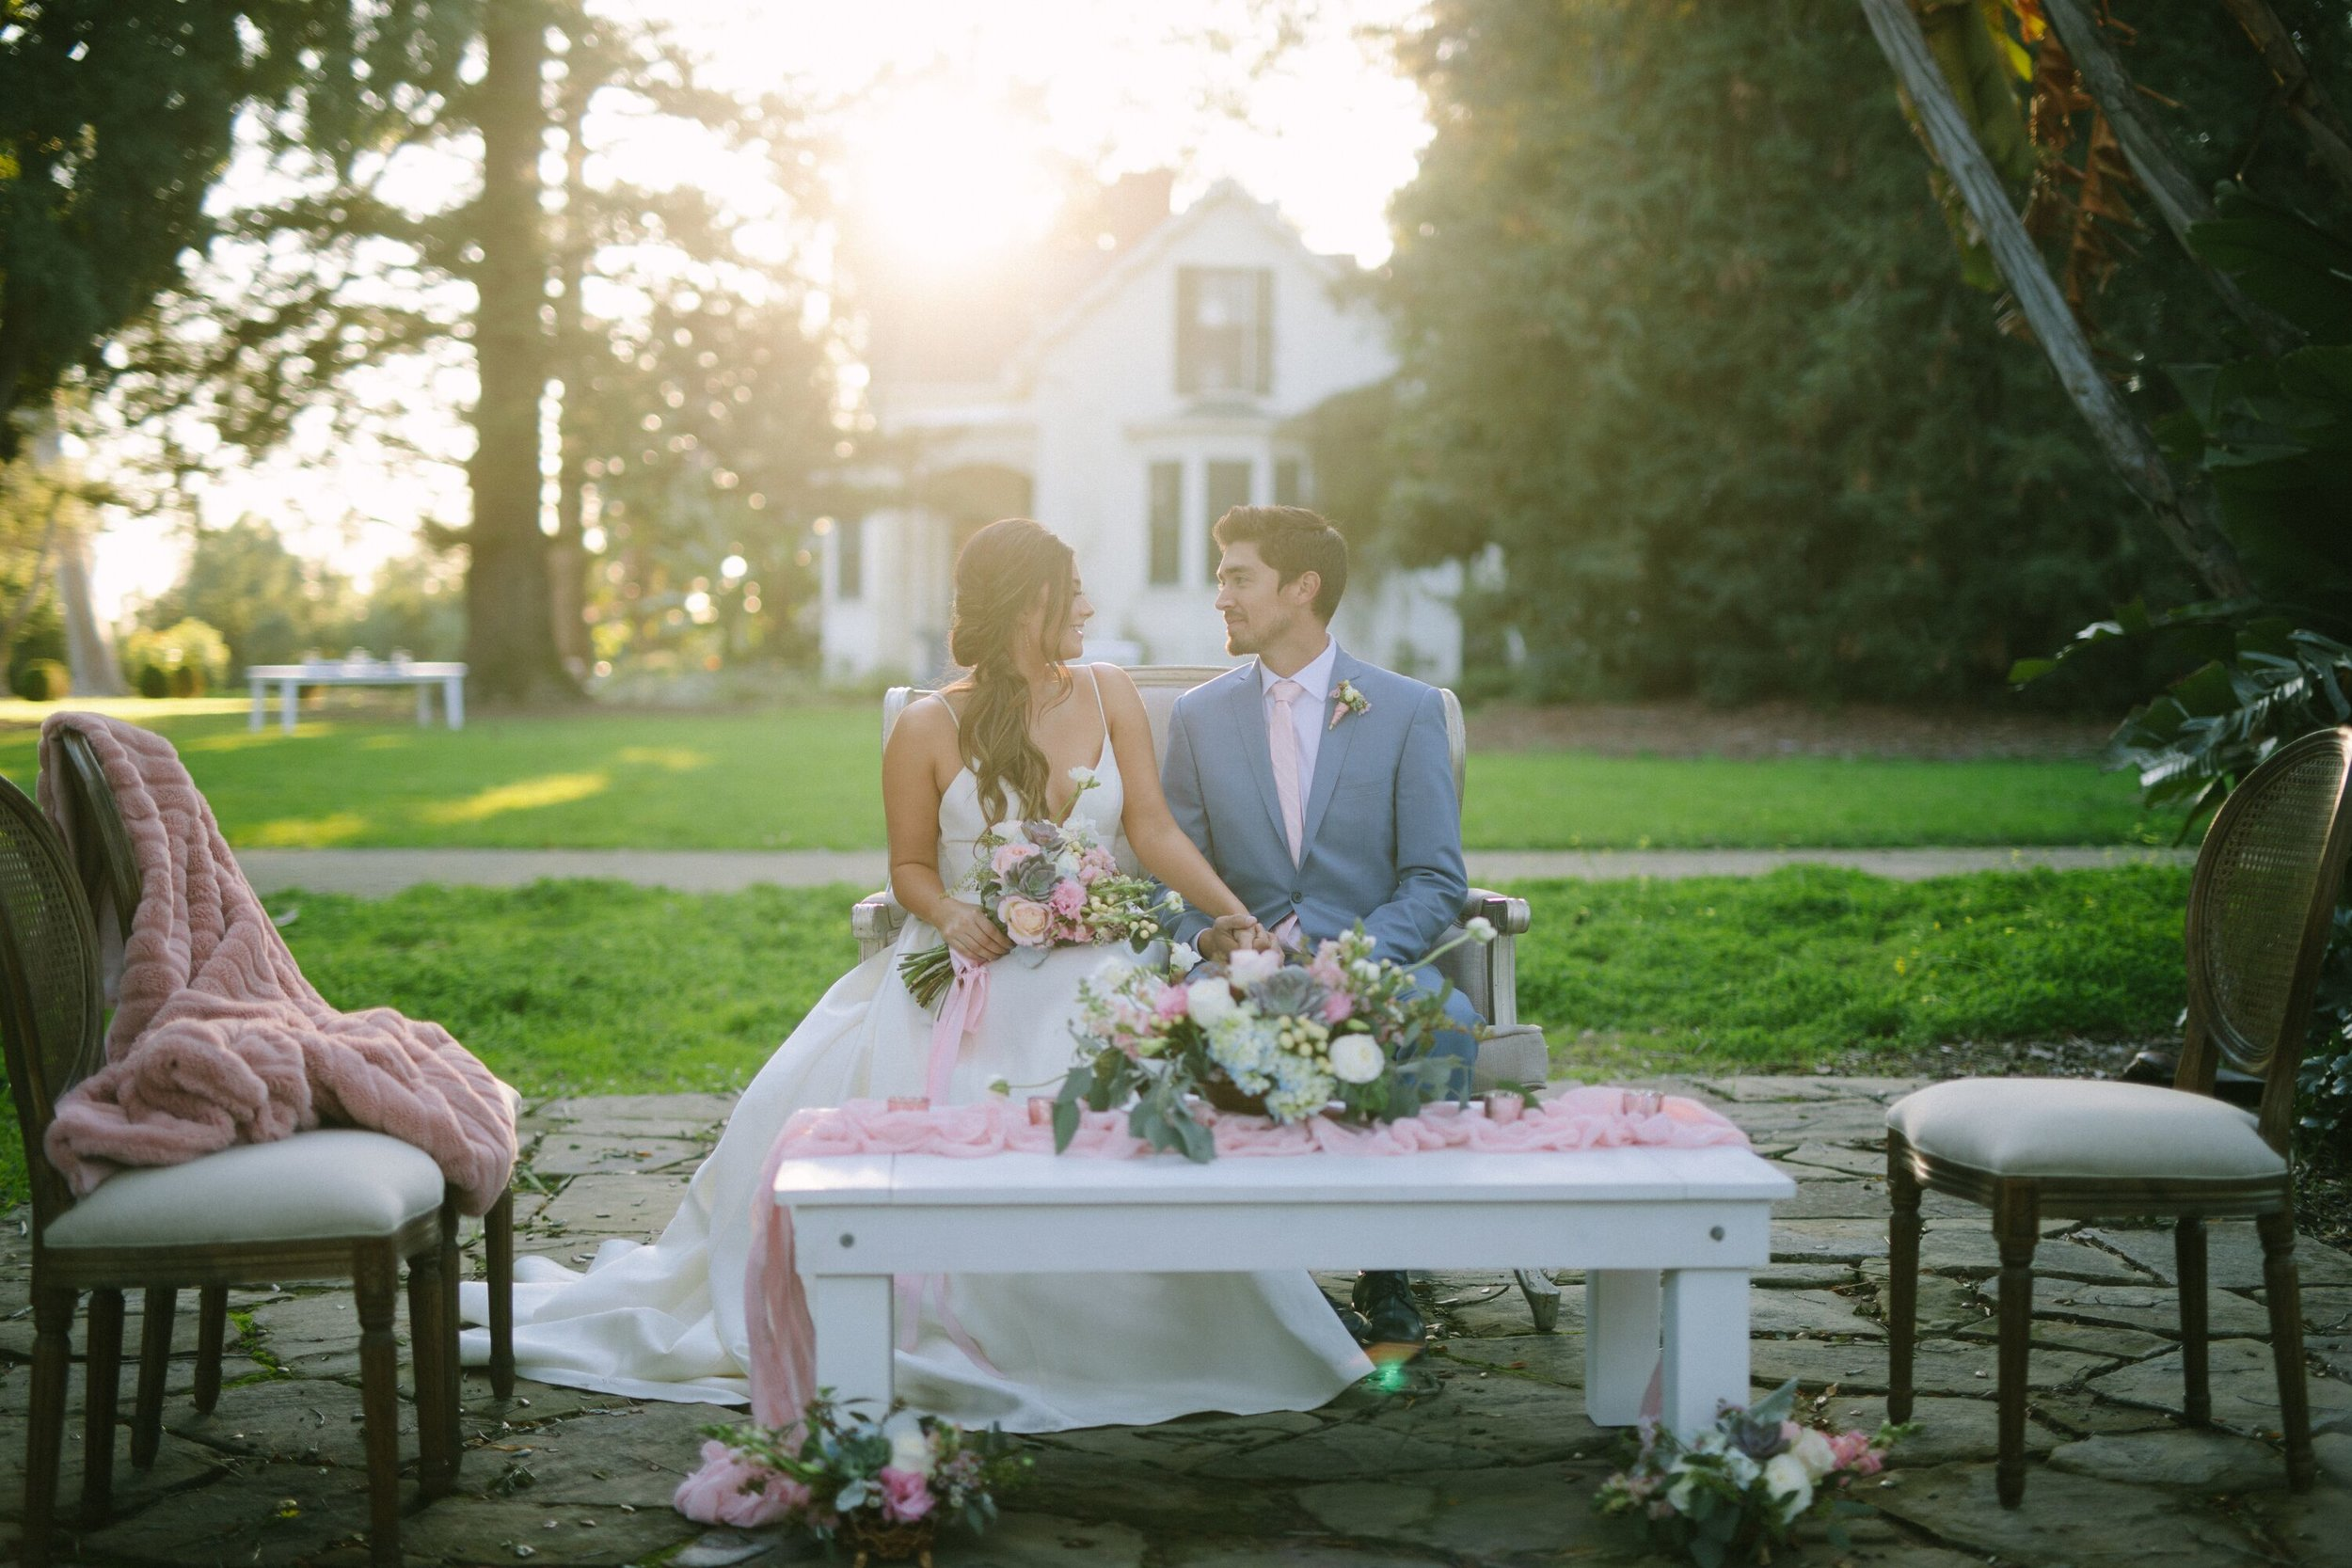 www.santabarbarawedding.com | Photographer: Patrick Ang | Venue: Rancho La Patera & Stow House | Wedding Planner: Elyse Rowen of Elyse Events | Bride and Groom Seated